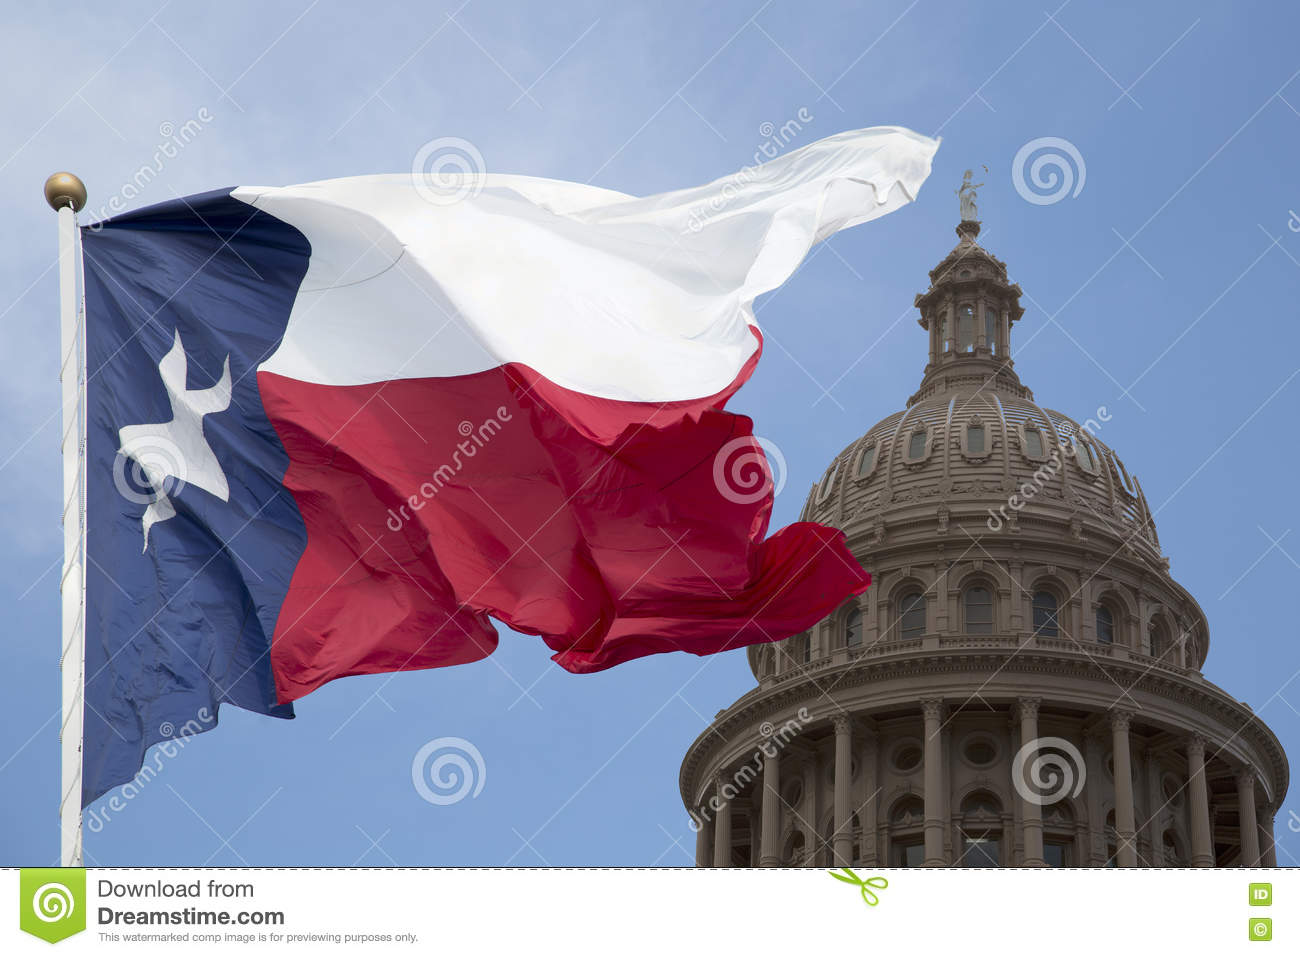 Texas state capital and waving flag